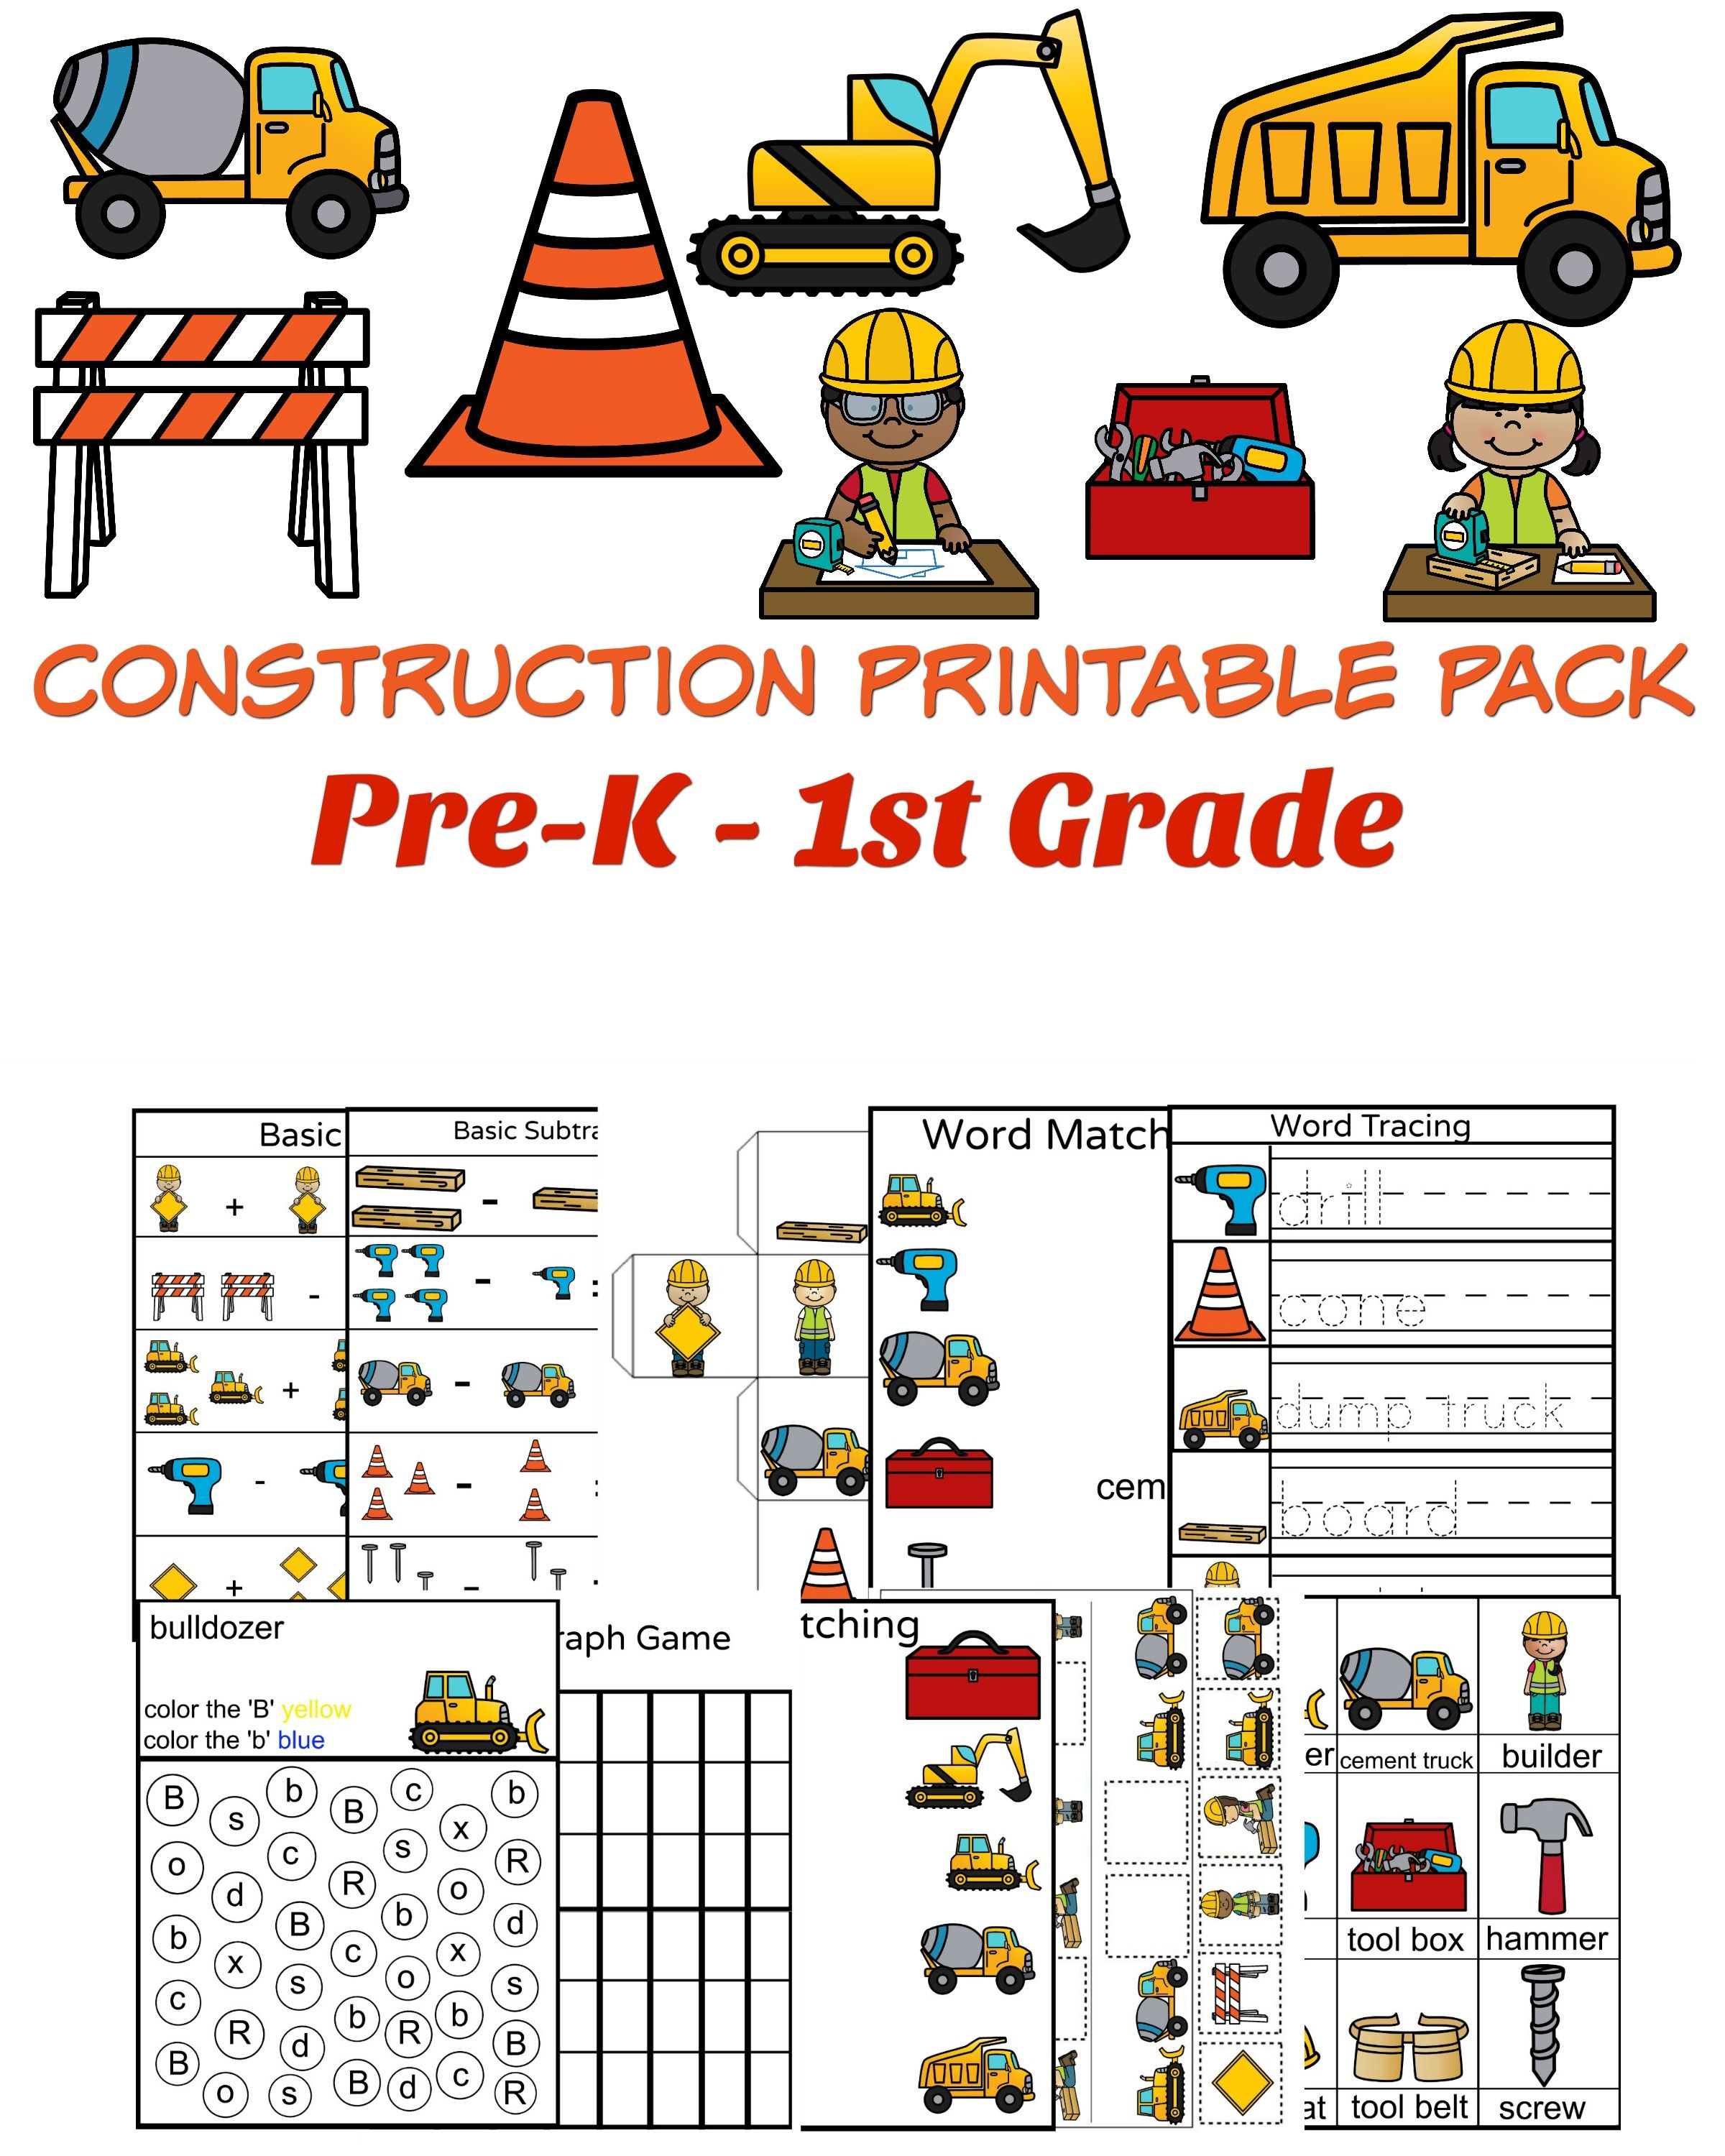 Worksheets Construction Math Worksheets construction themed math and literacy worksheets free printables printable with basic pictures word tracing picture matching more